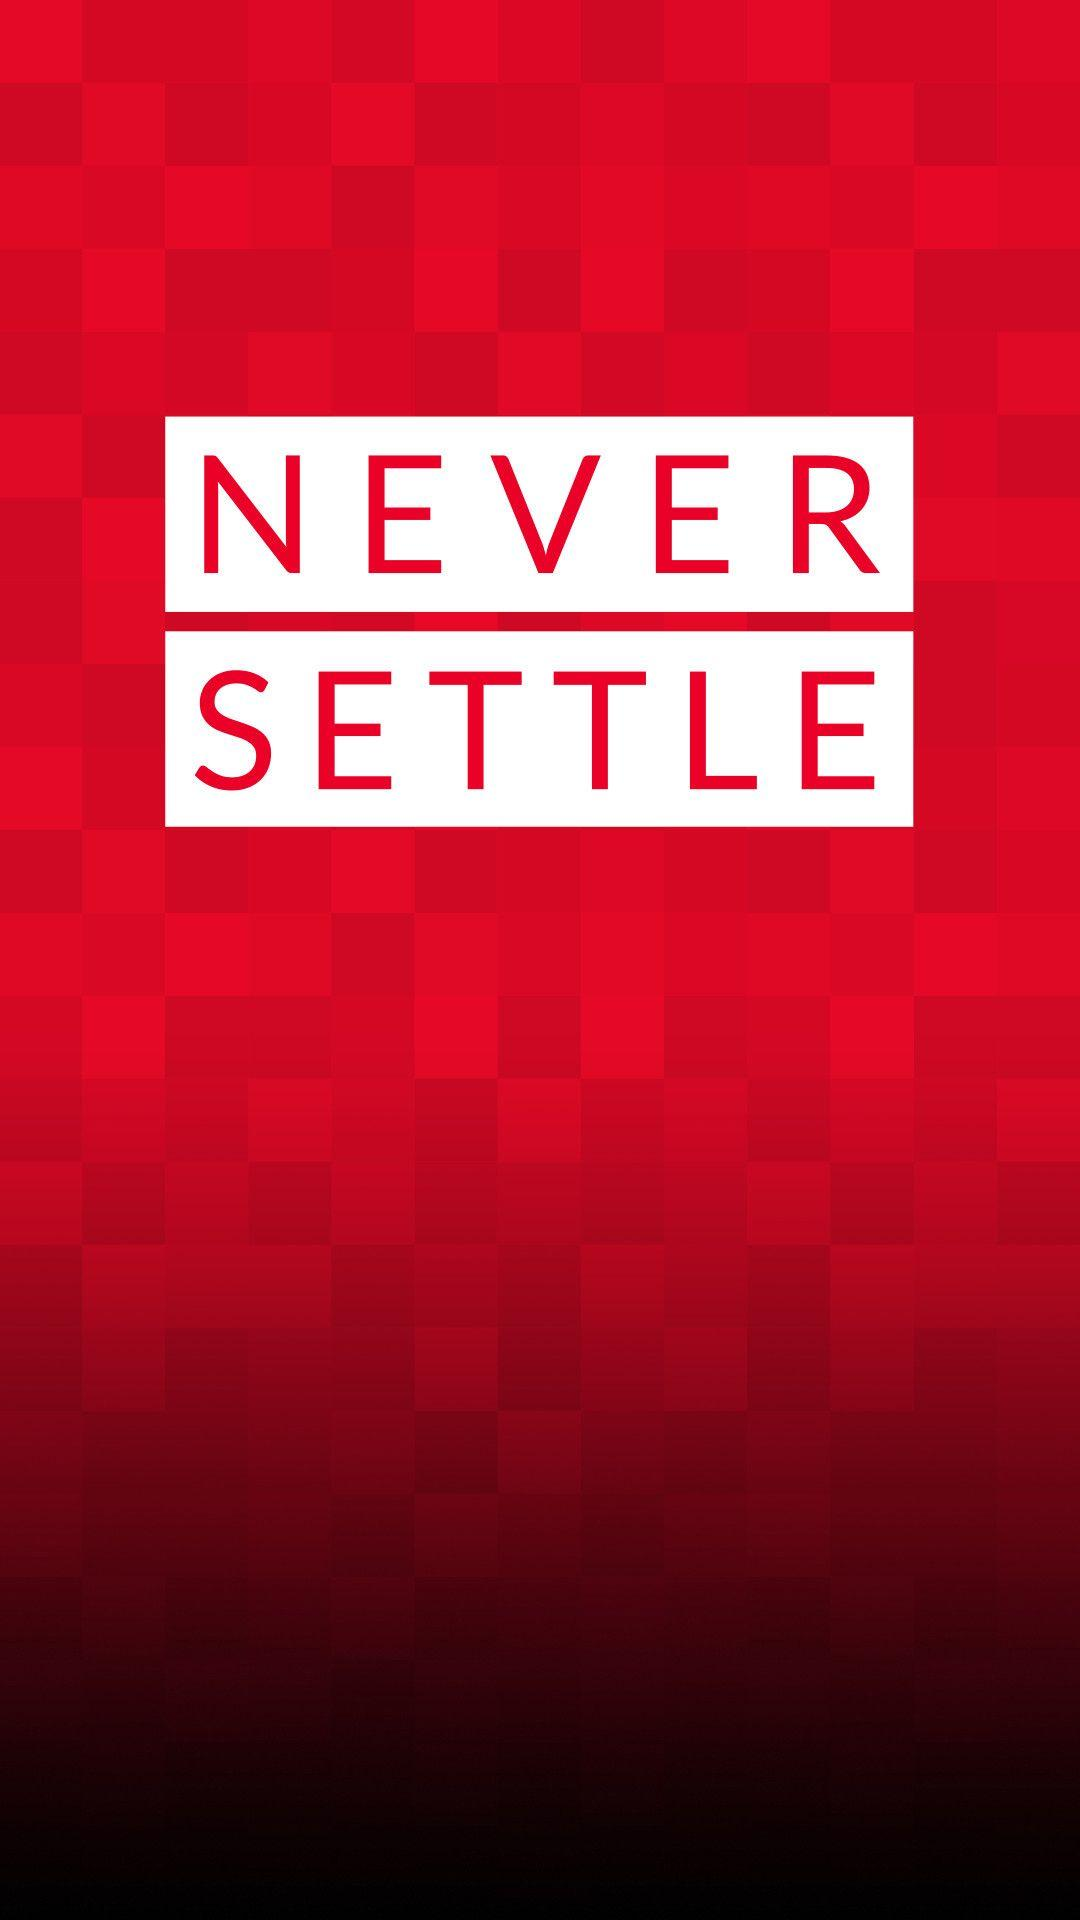 OnePlus Stock Never Settle Red Android Wallpapers free download